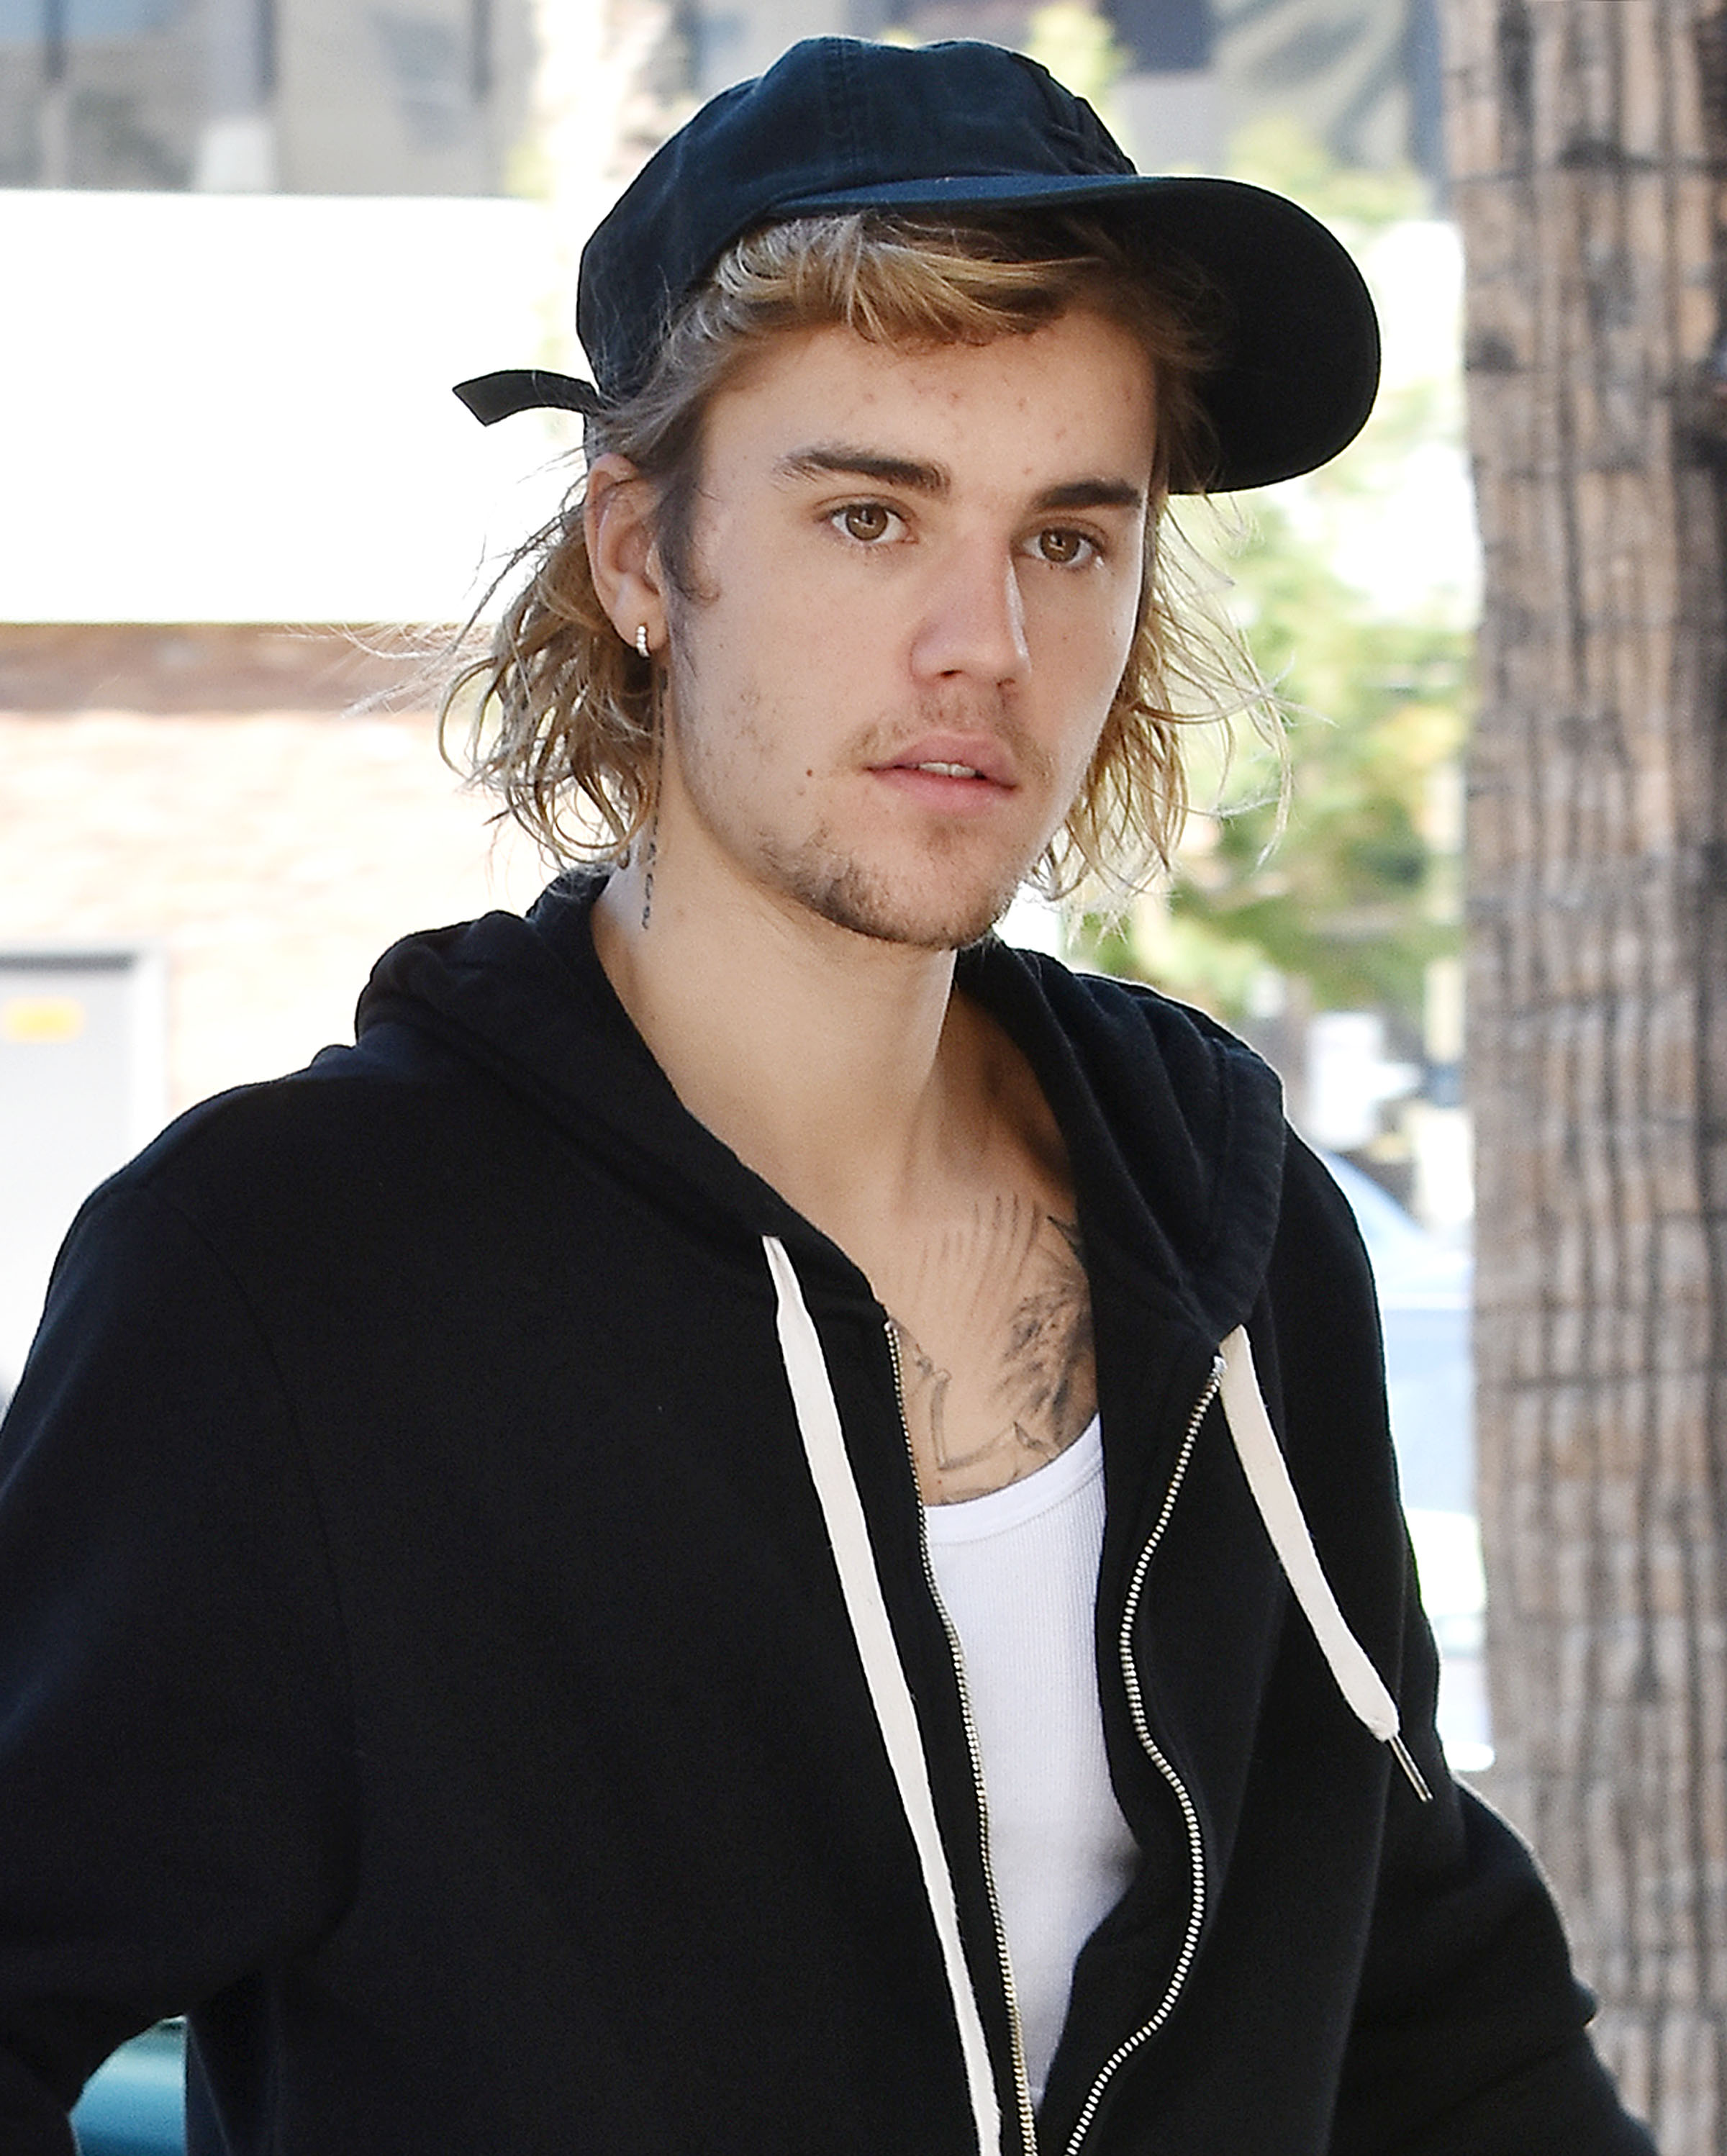 Let's Take a Moment to Unpack Justin Bieber's Street Style, Shall We?